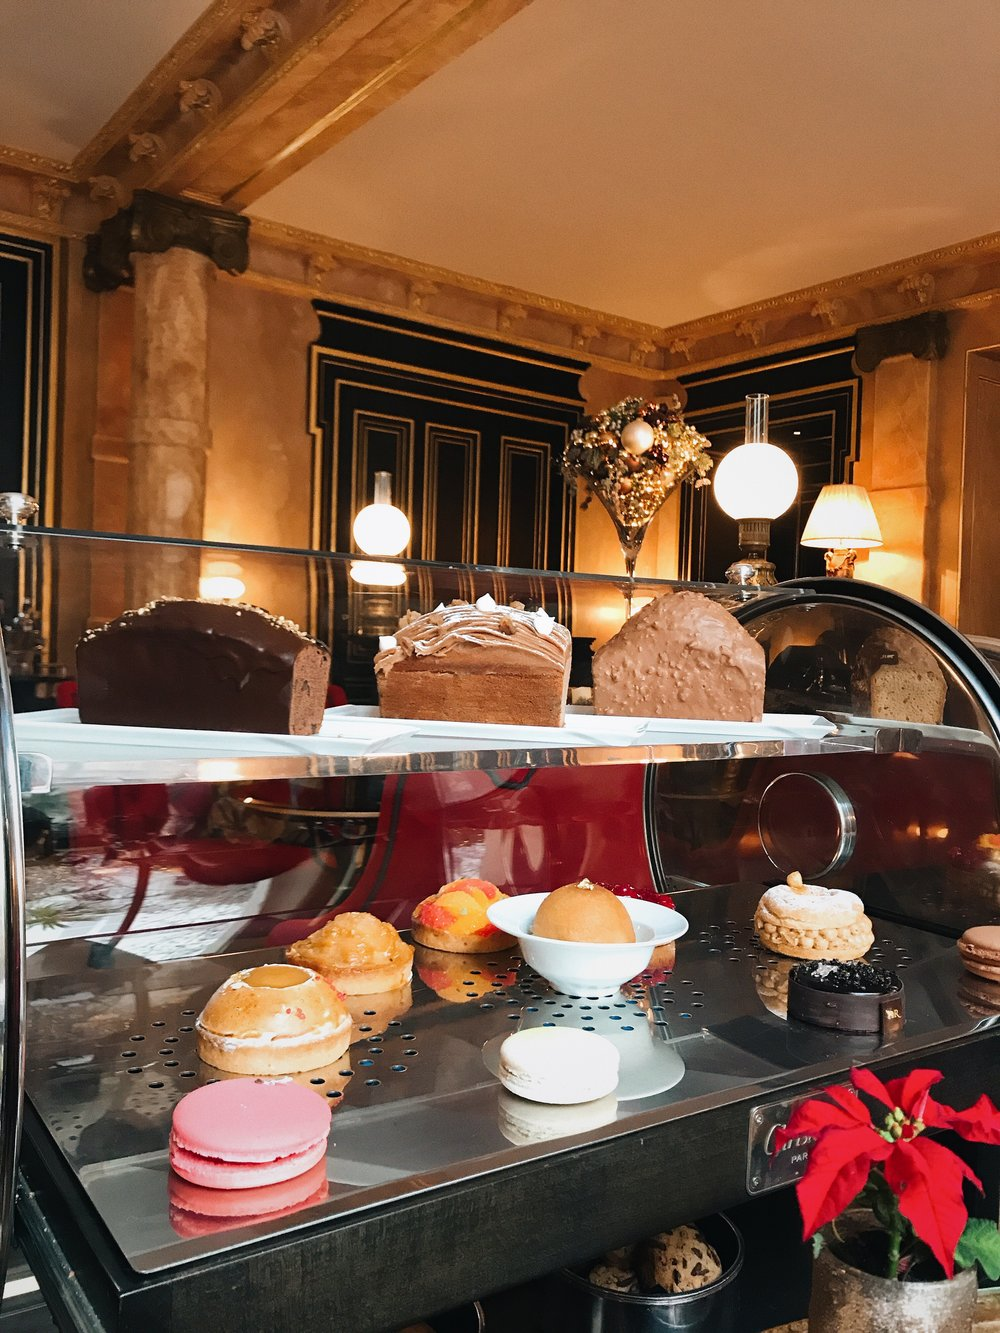 A la carte choice - If the entire afternoon tea set is too heavy for you, another option is to go for a la carte cakes and desserts. They are bigger portion of the snacks.